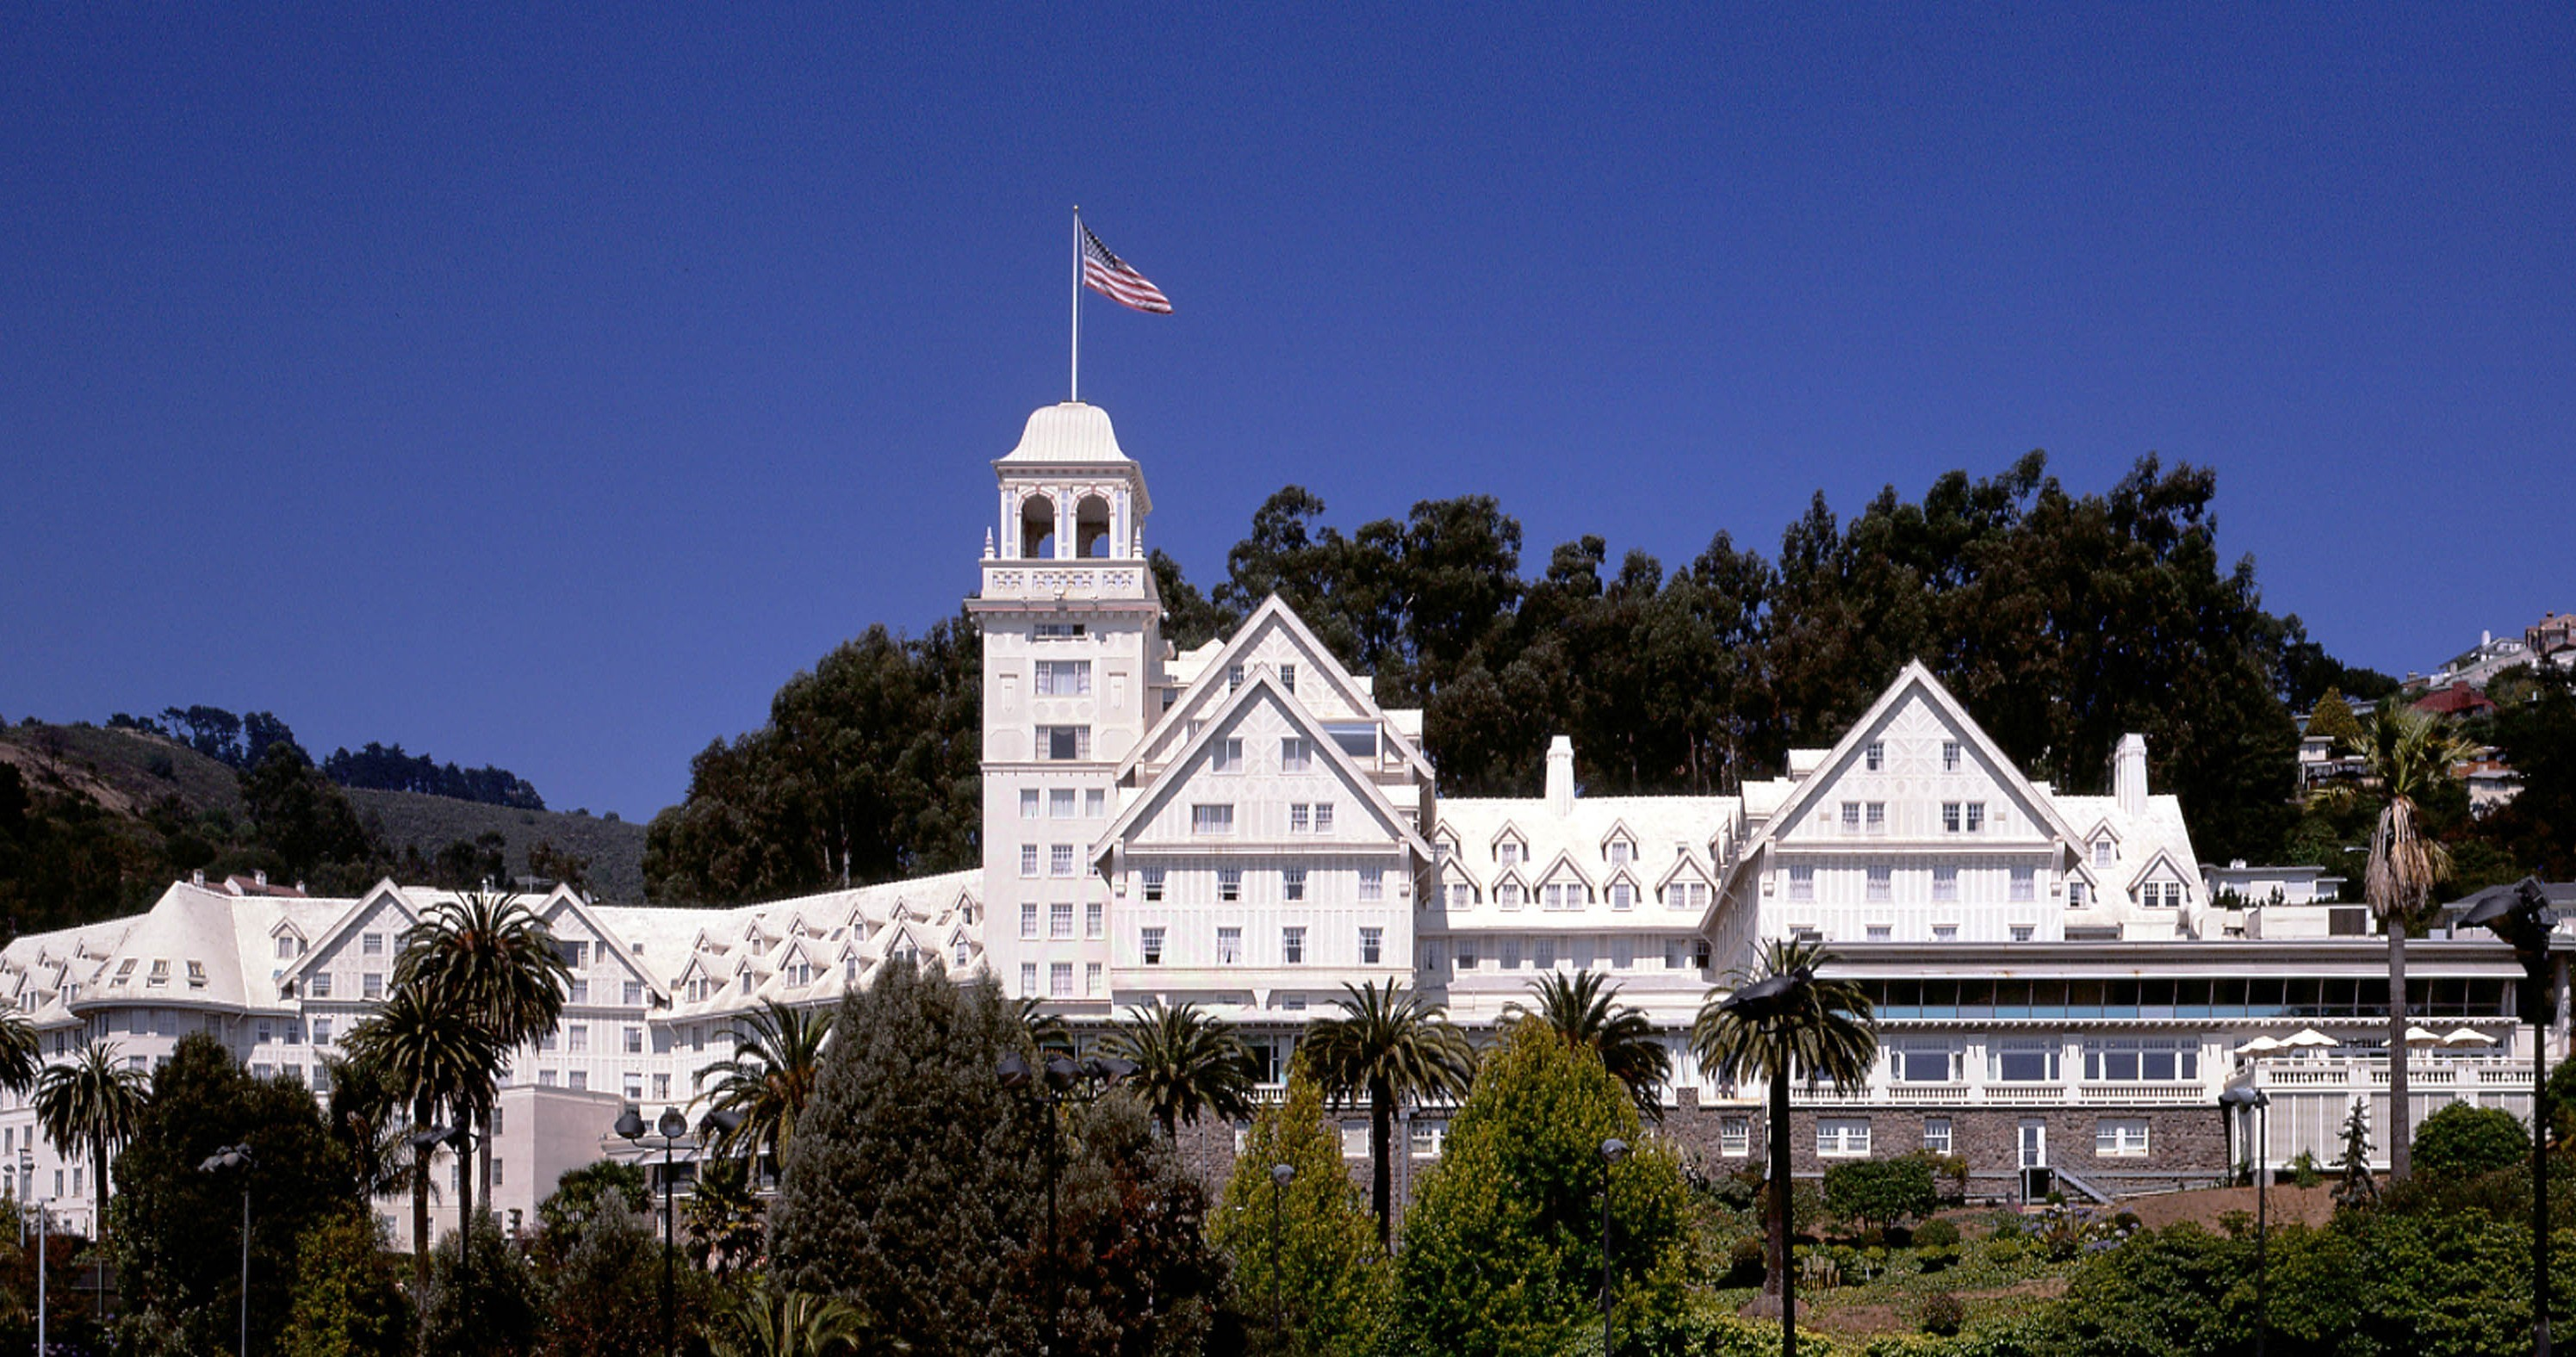 Hotel, Historic, Claremont hotel club spa